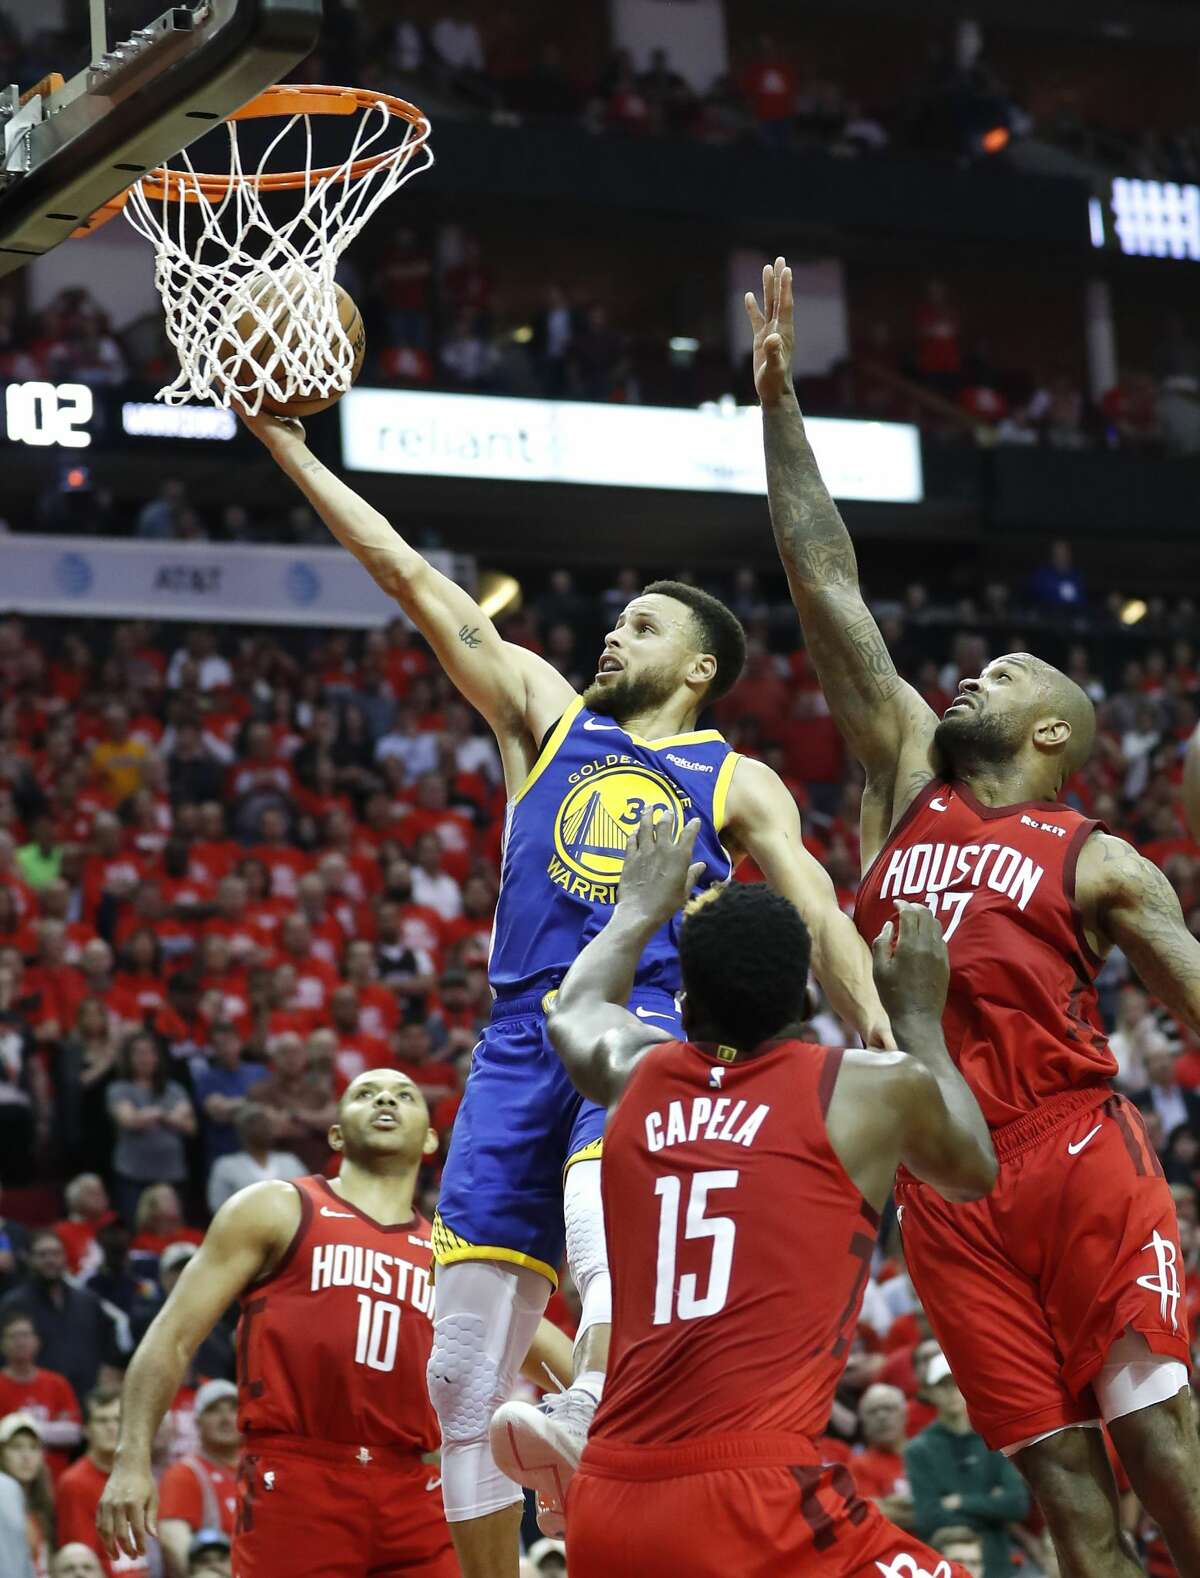 during the second half of Game 6 of the NBA Western Conference semifinals at Toyota Center on Friday, May 10, 2019, in Houston. The Warriors eliminated the Rockets with a 118-113 win, to take the series 4-2.